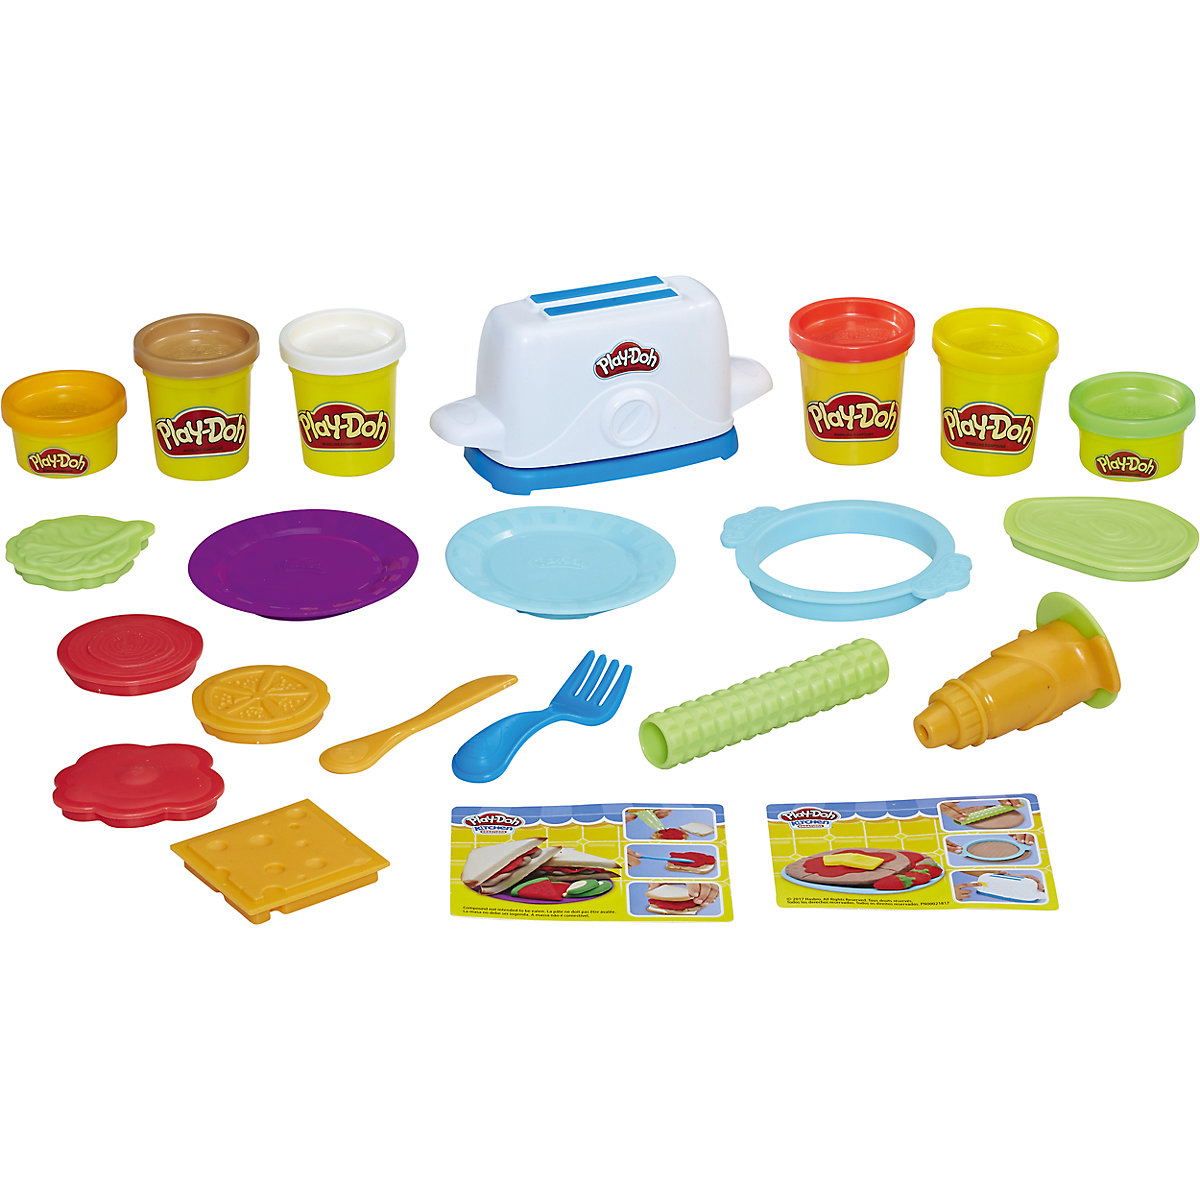 Play-Doh Modeling Clay/Slime 8376441 office plasticine hand gum sculpt kids girl boy girls boys for children play-doh play doh modeling clay slime 8606530 office plasticine hand gum sculpt kids girl boy girls boys for children play doh